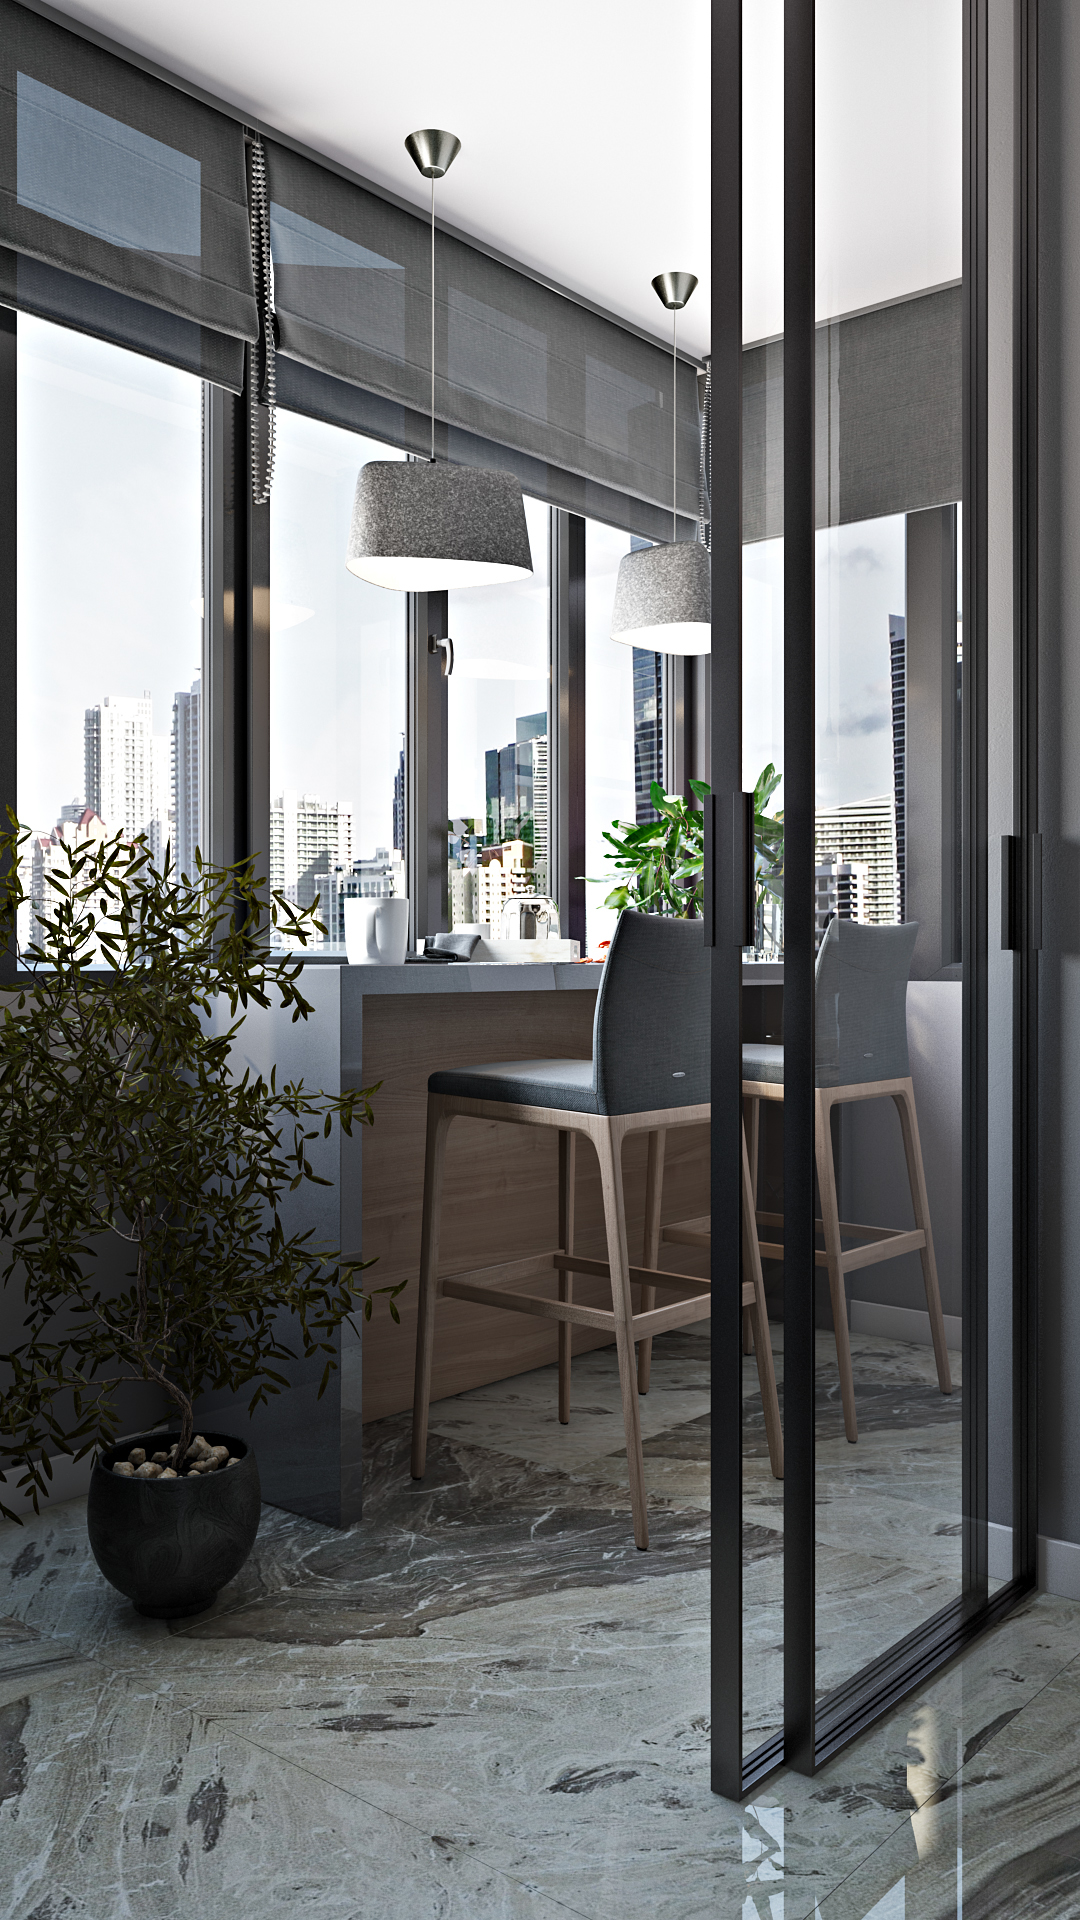 The Industrial Interior Design to Get Your Inspirations Going! 6 industrial interior design The Industrial Interior Design to Get Your Inspirations Going! The Industrial Interior Design to Get Your Inspirations Going 6